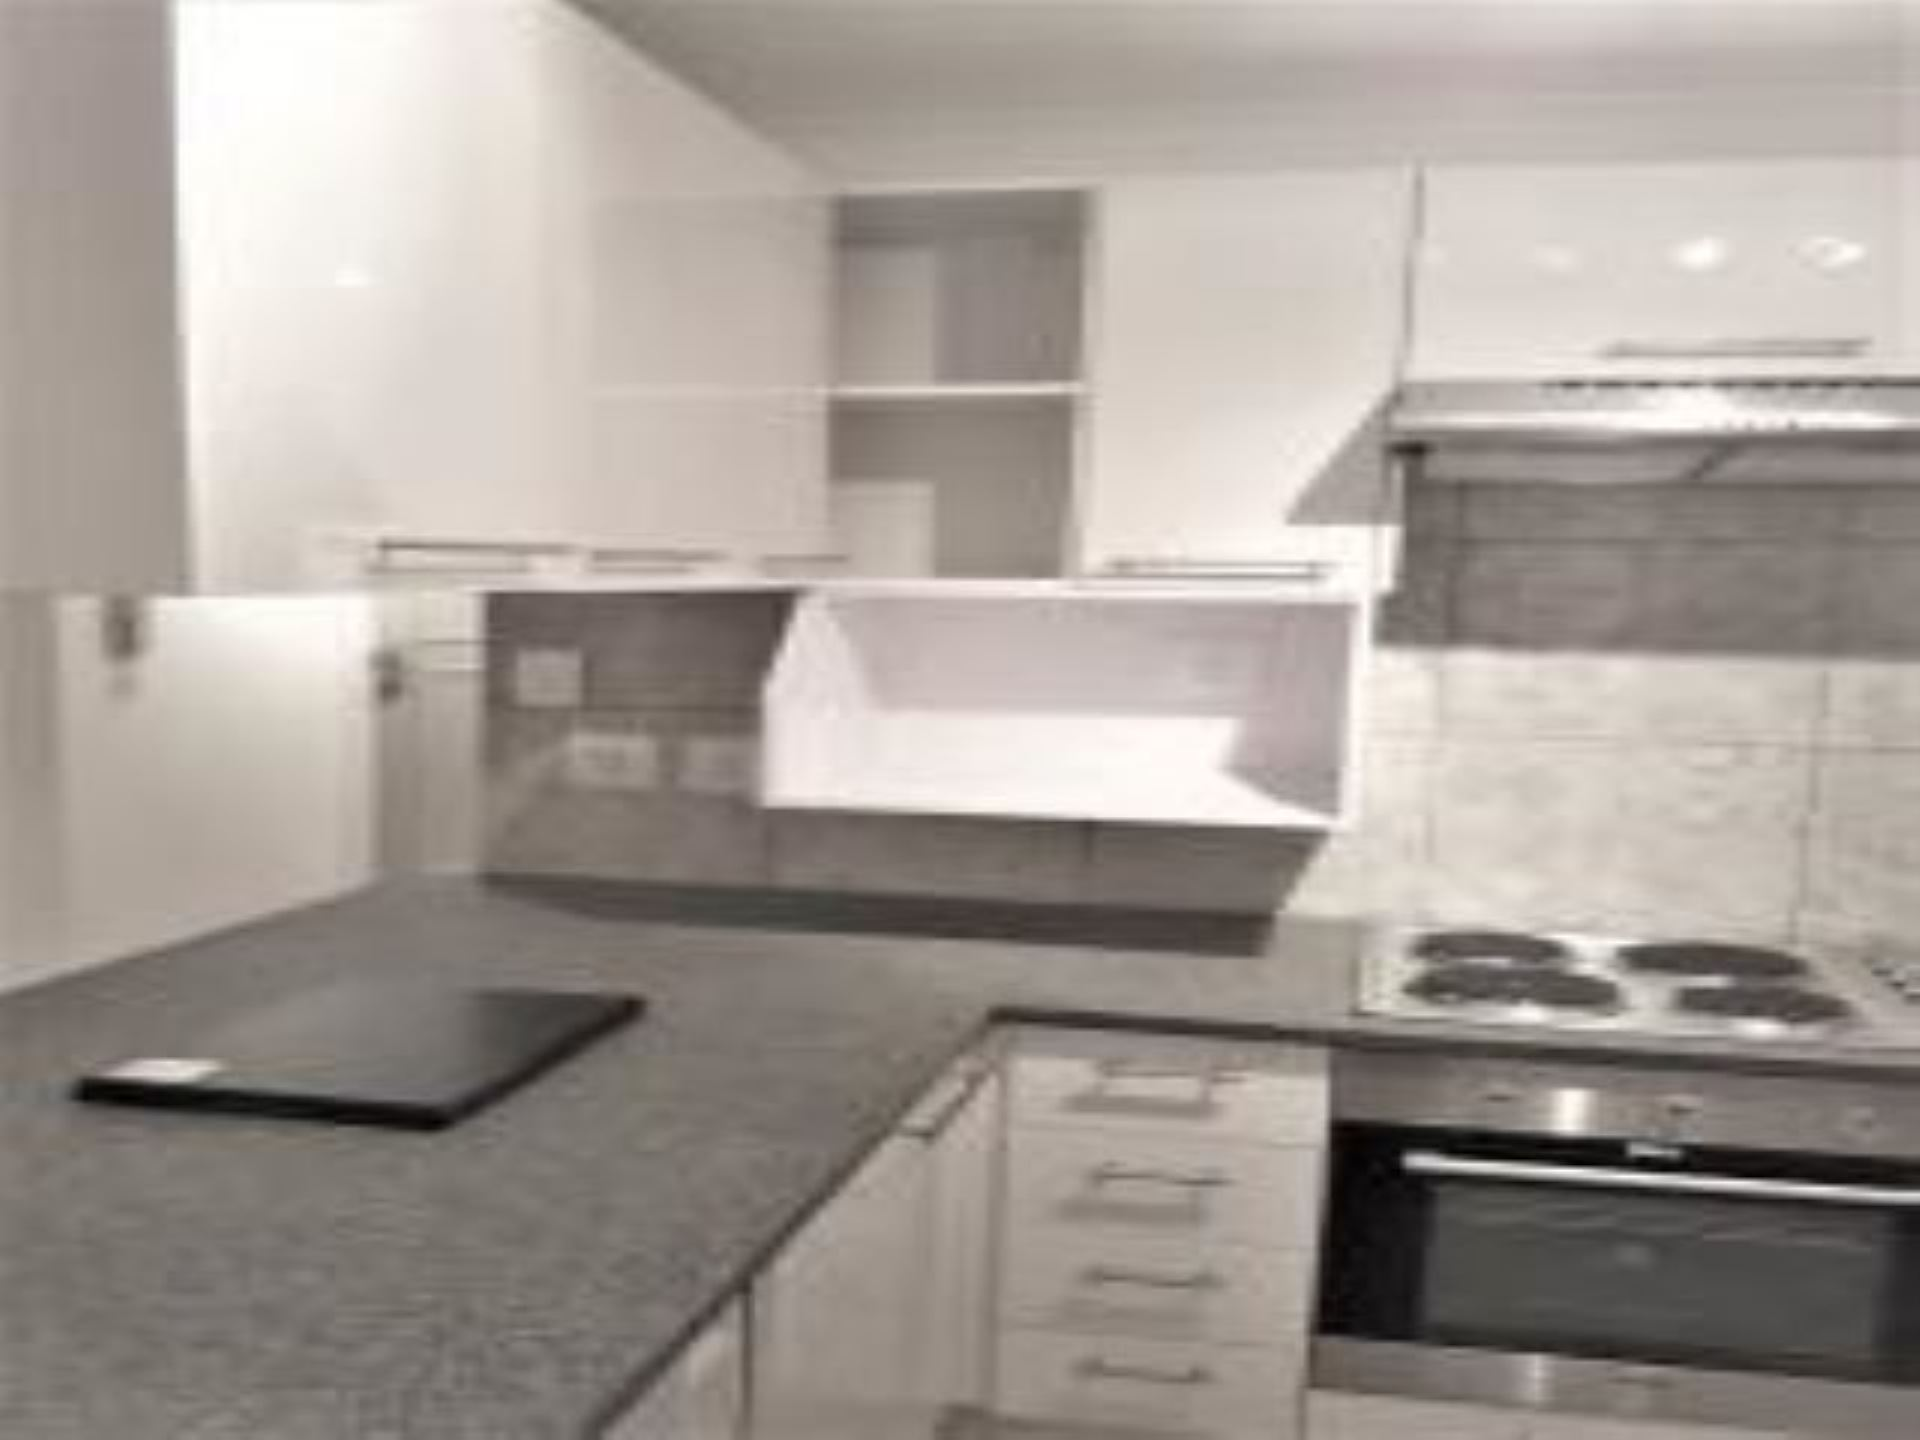 Apartment Rental Monthly in BENMORE GARDENS